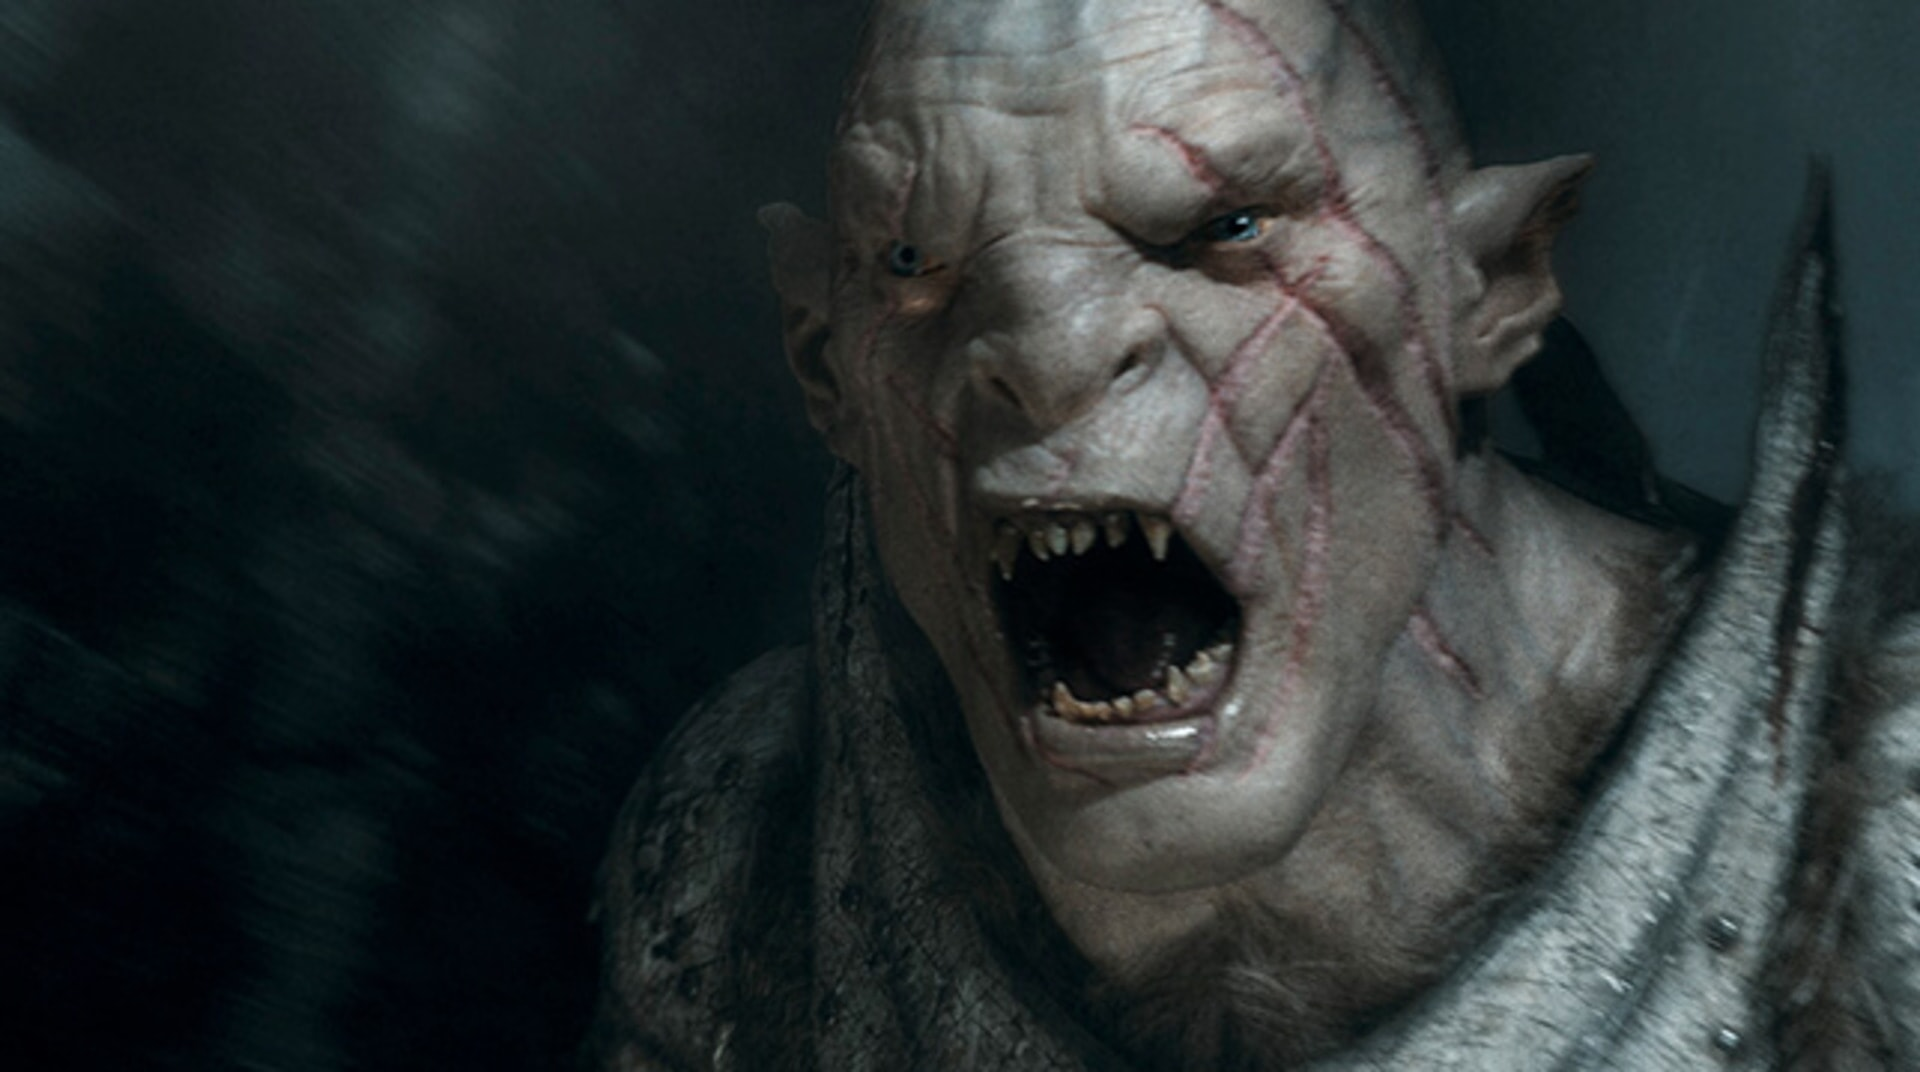 The Hobbit: The Battle of the Five Armies - Image 48